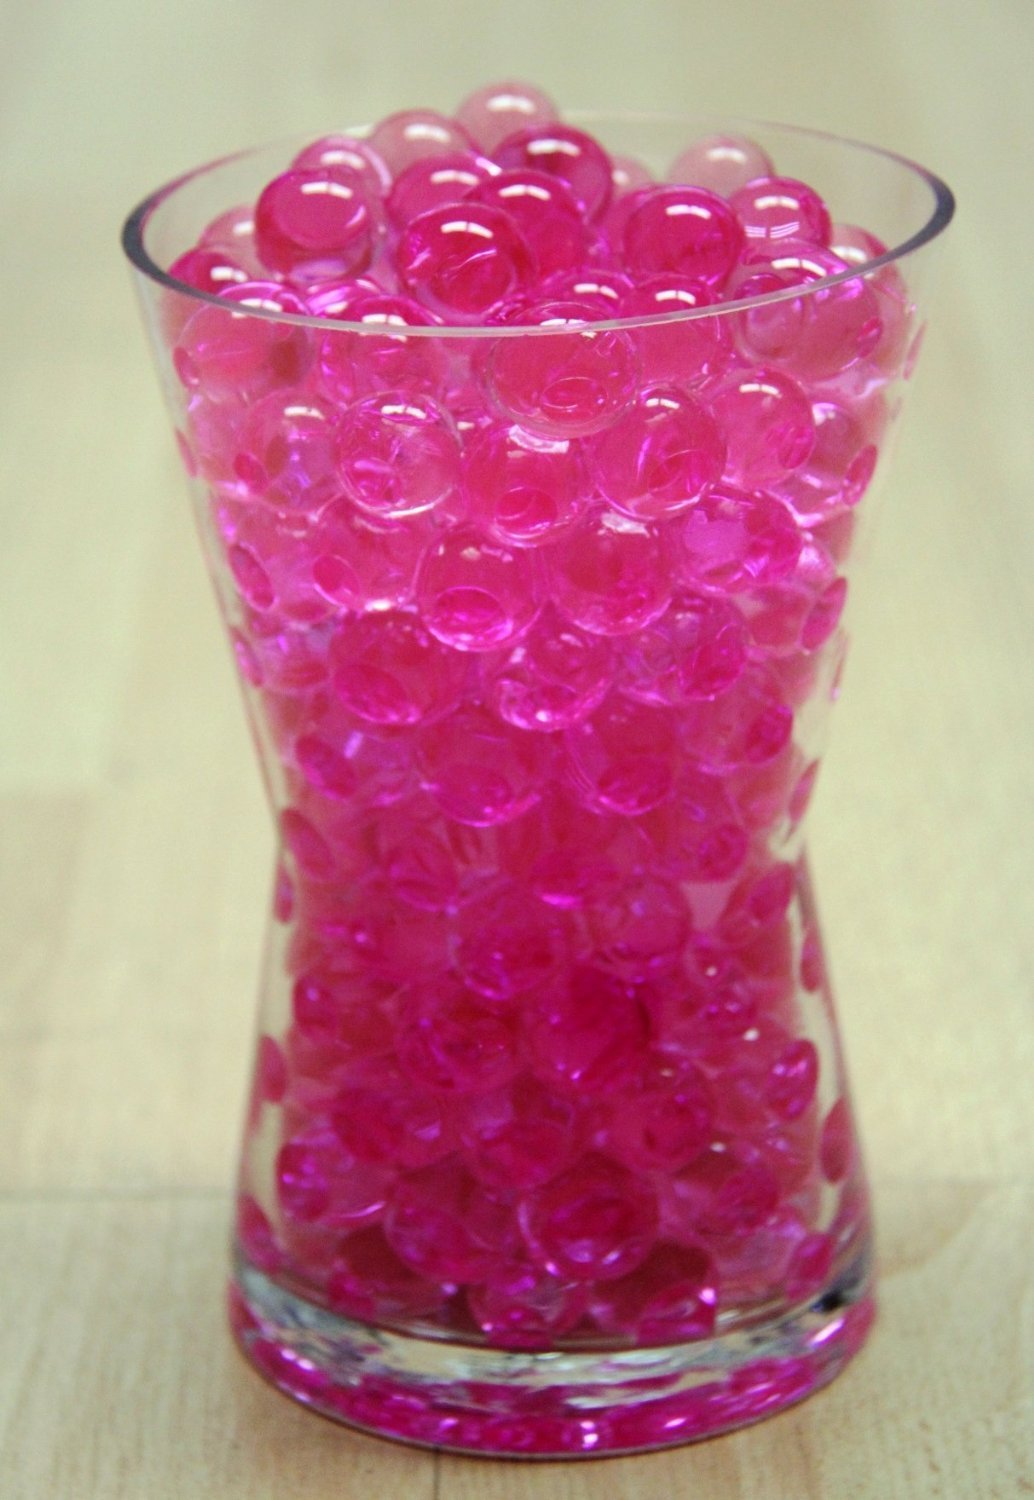 Cheap vase gel beads find vase gel beads deals on line at alibaba get quotations vase filler gel beads pink 4oz makes 3 gallons water storing gel reviewsmspy